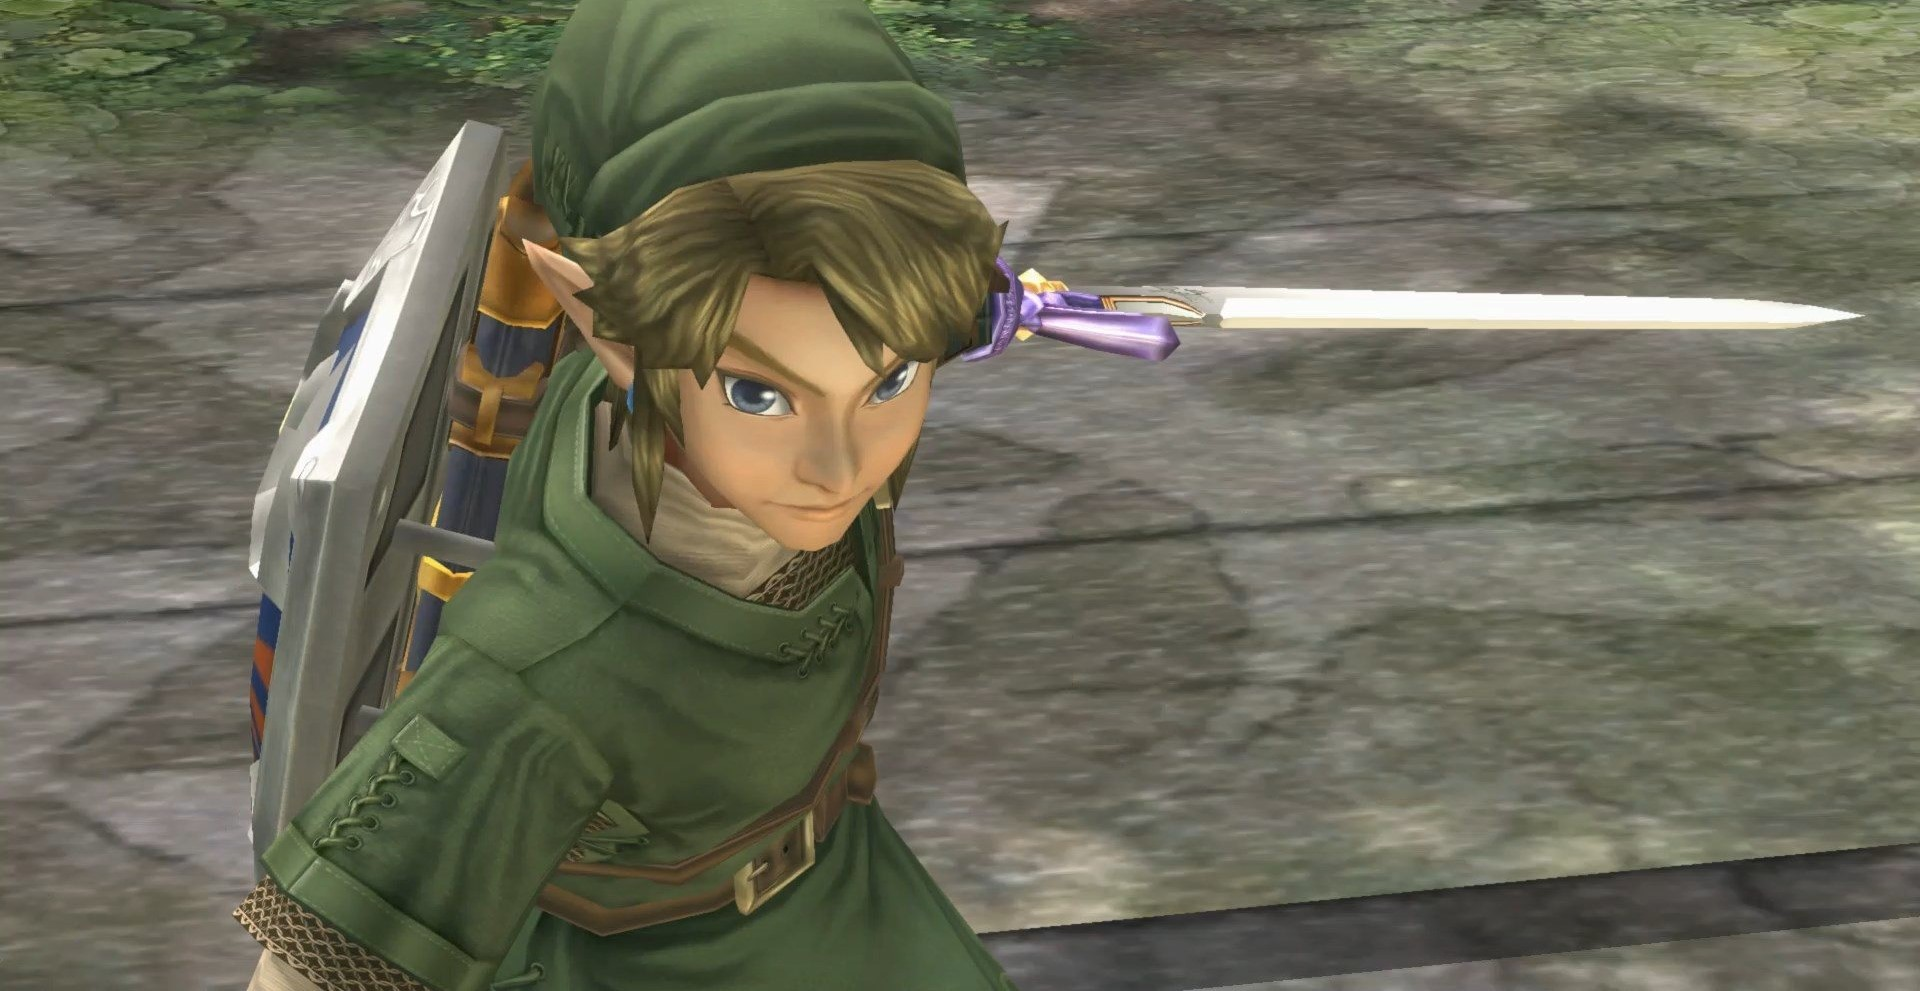 Nintendo trims online game selection · Wii, DS titles no